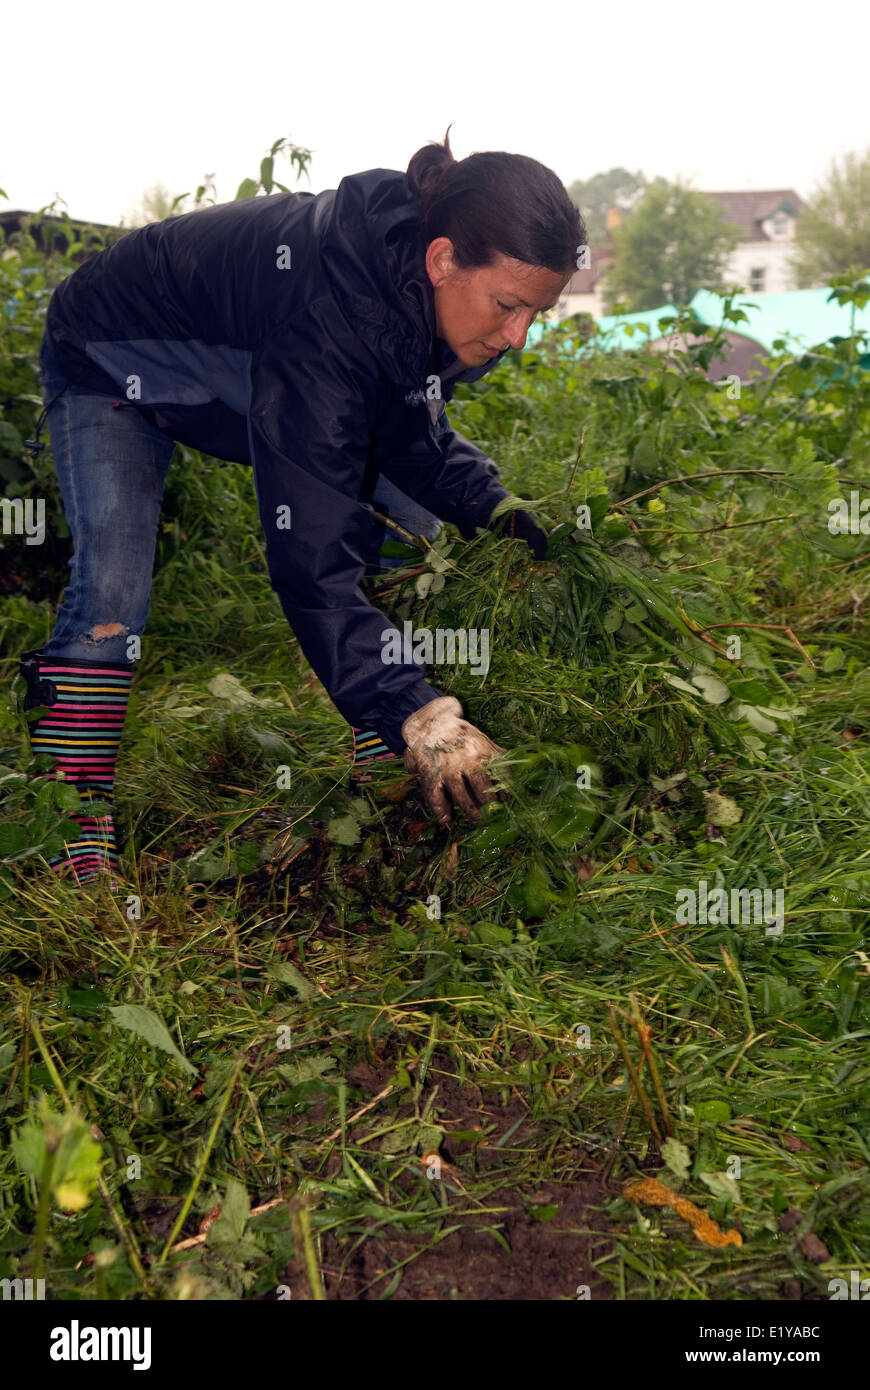 Woman doing voluntary work clearing foliage to make way for new scout hut, Liss, Hampshire, UK. - Stock Image